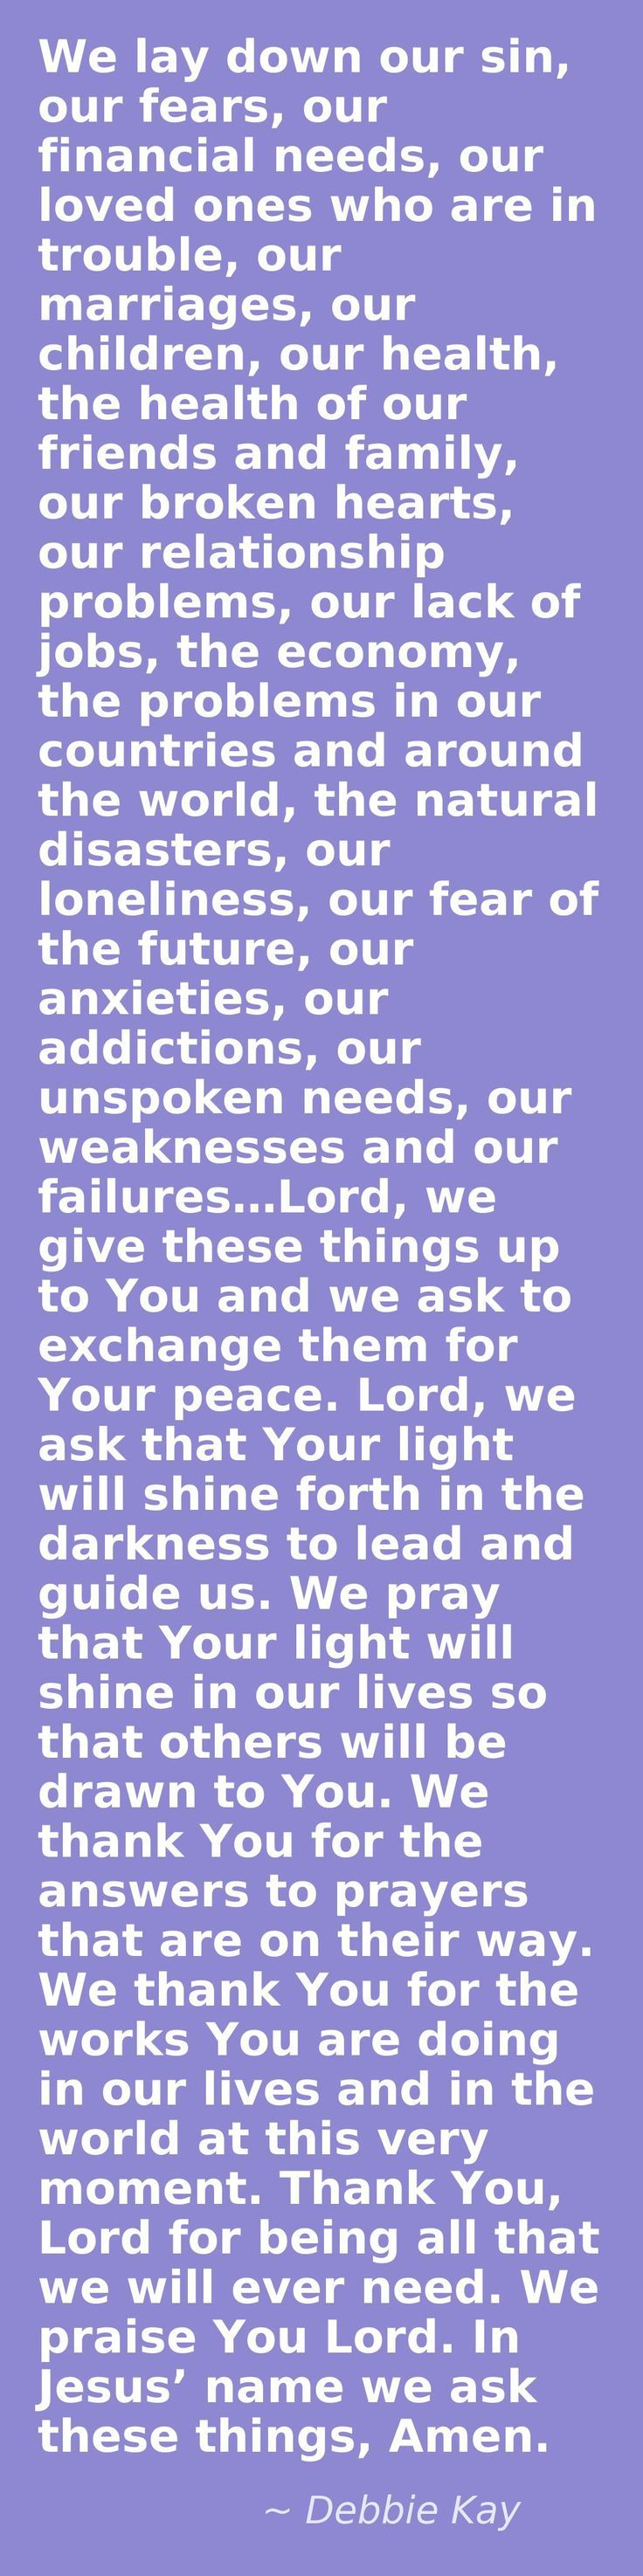 What a beautiful prayer by Debbie Kay